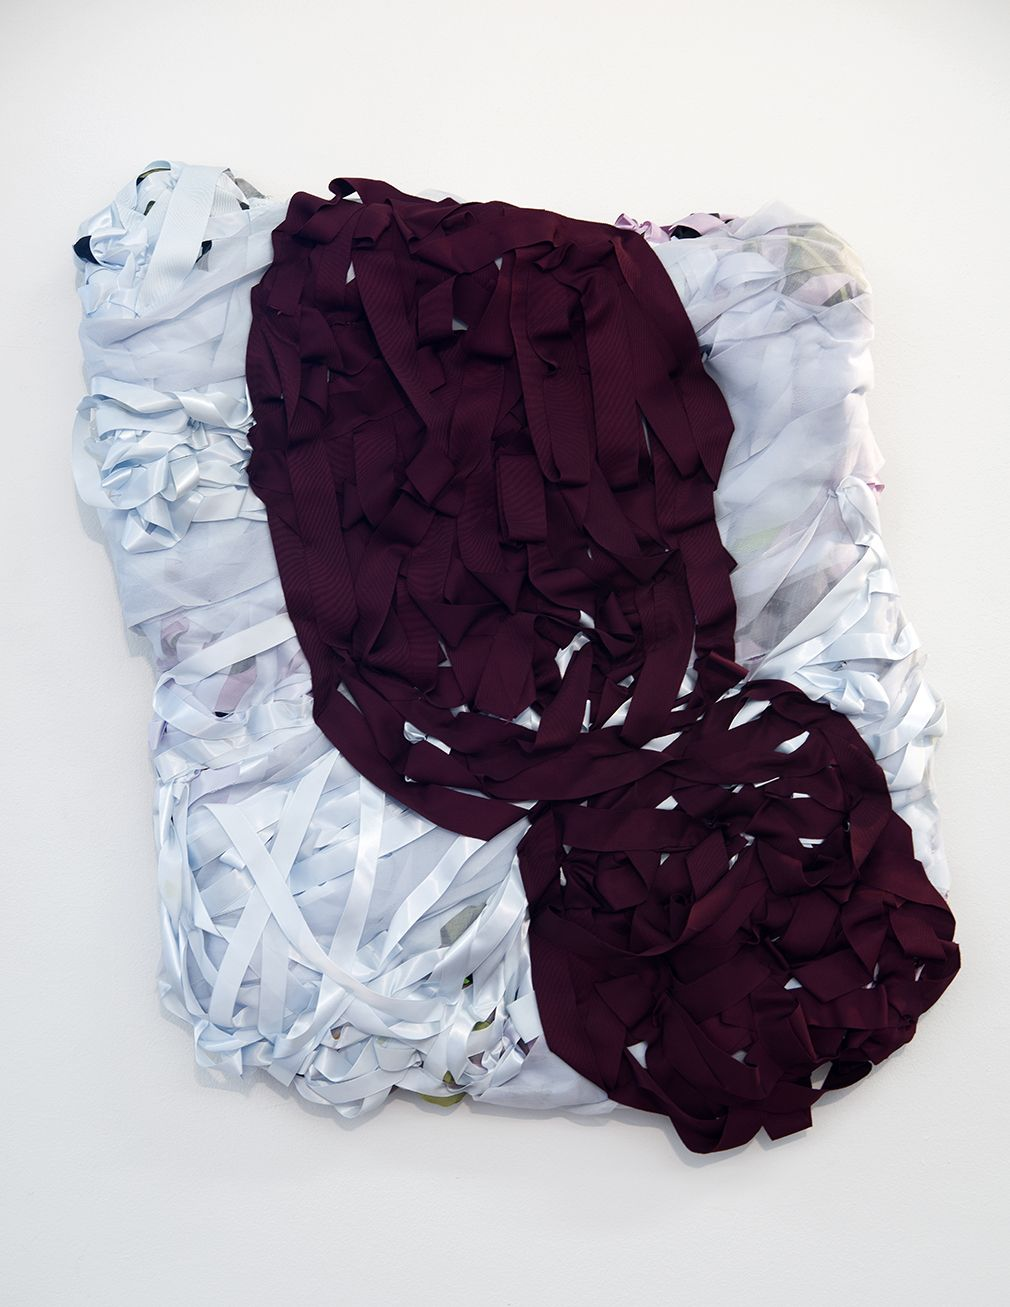 """Vadis Turner,Two Heads, recycled textiles, mixed media, 33"""" x 27"""", 2016"""